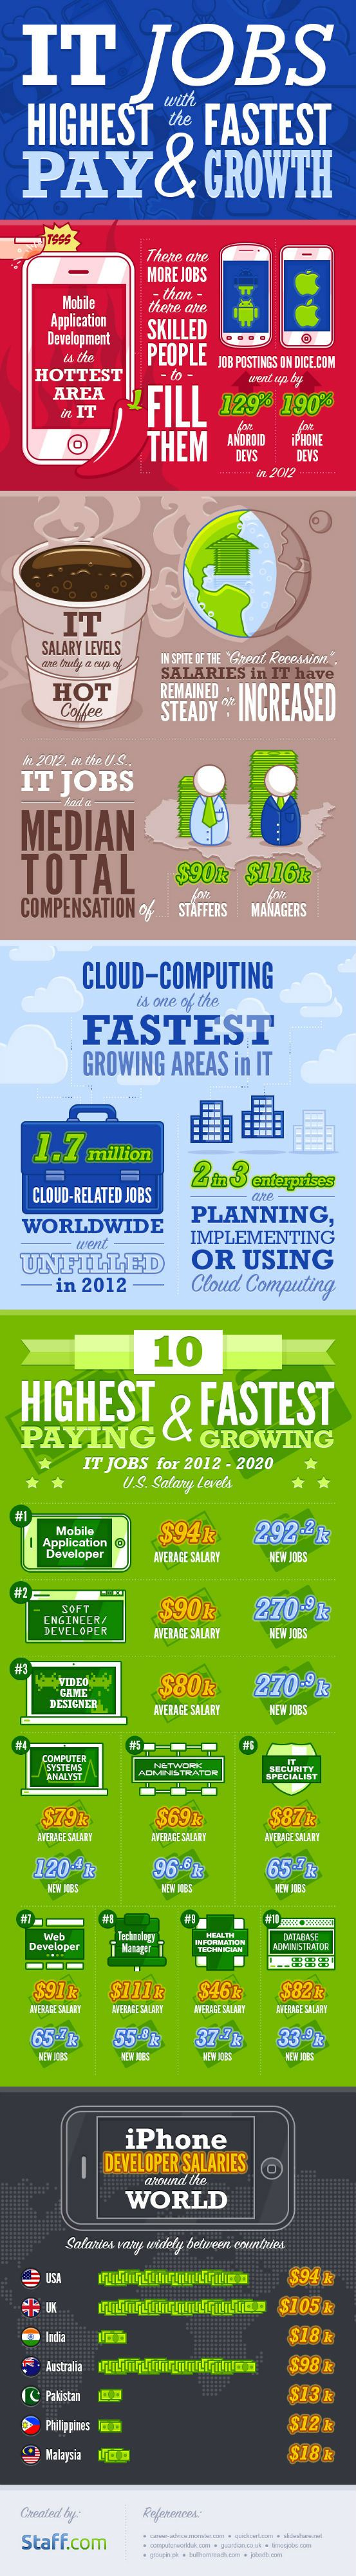 Top 10 Highest Paying And Fastest Growing IT Jobs